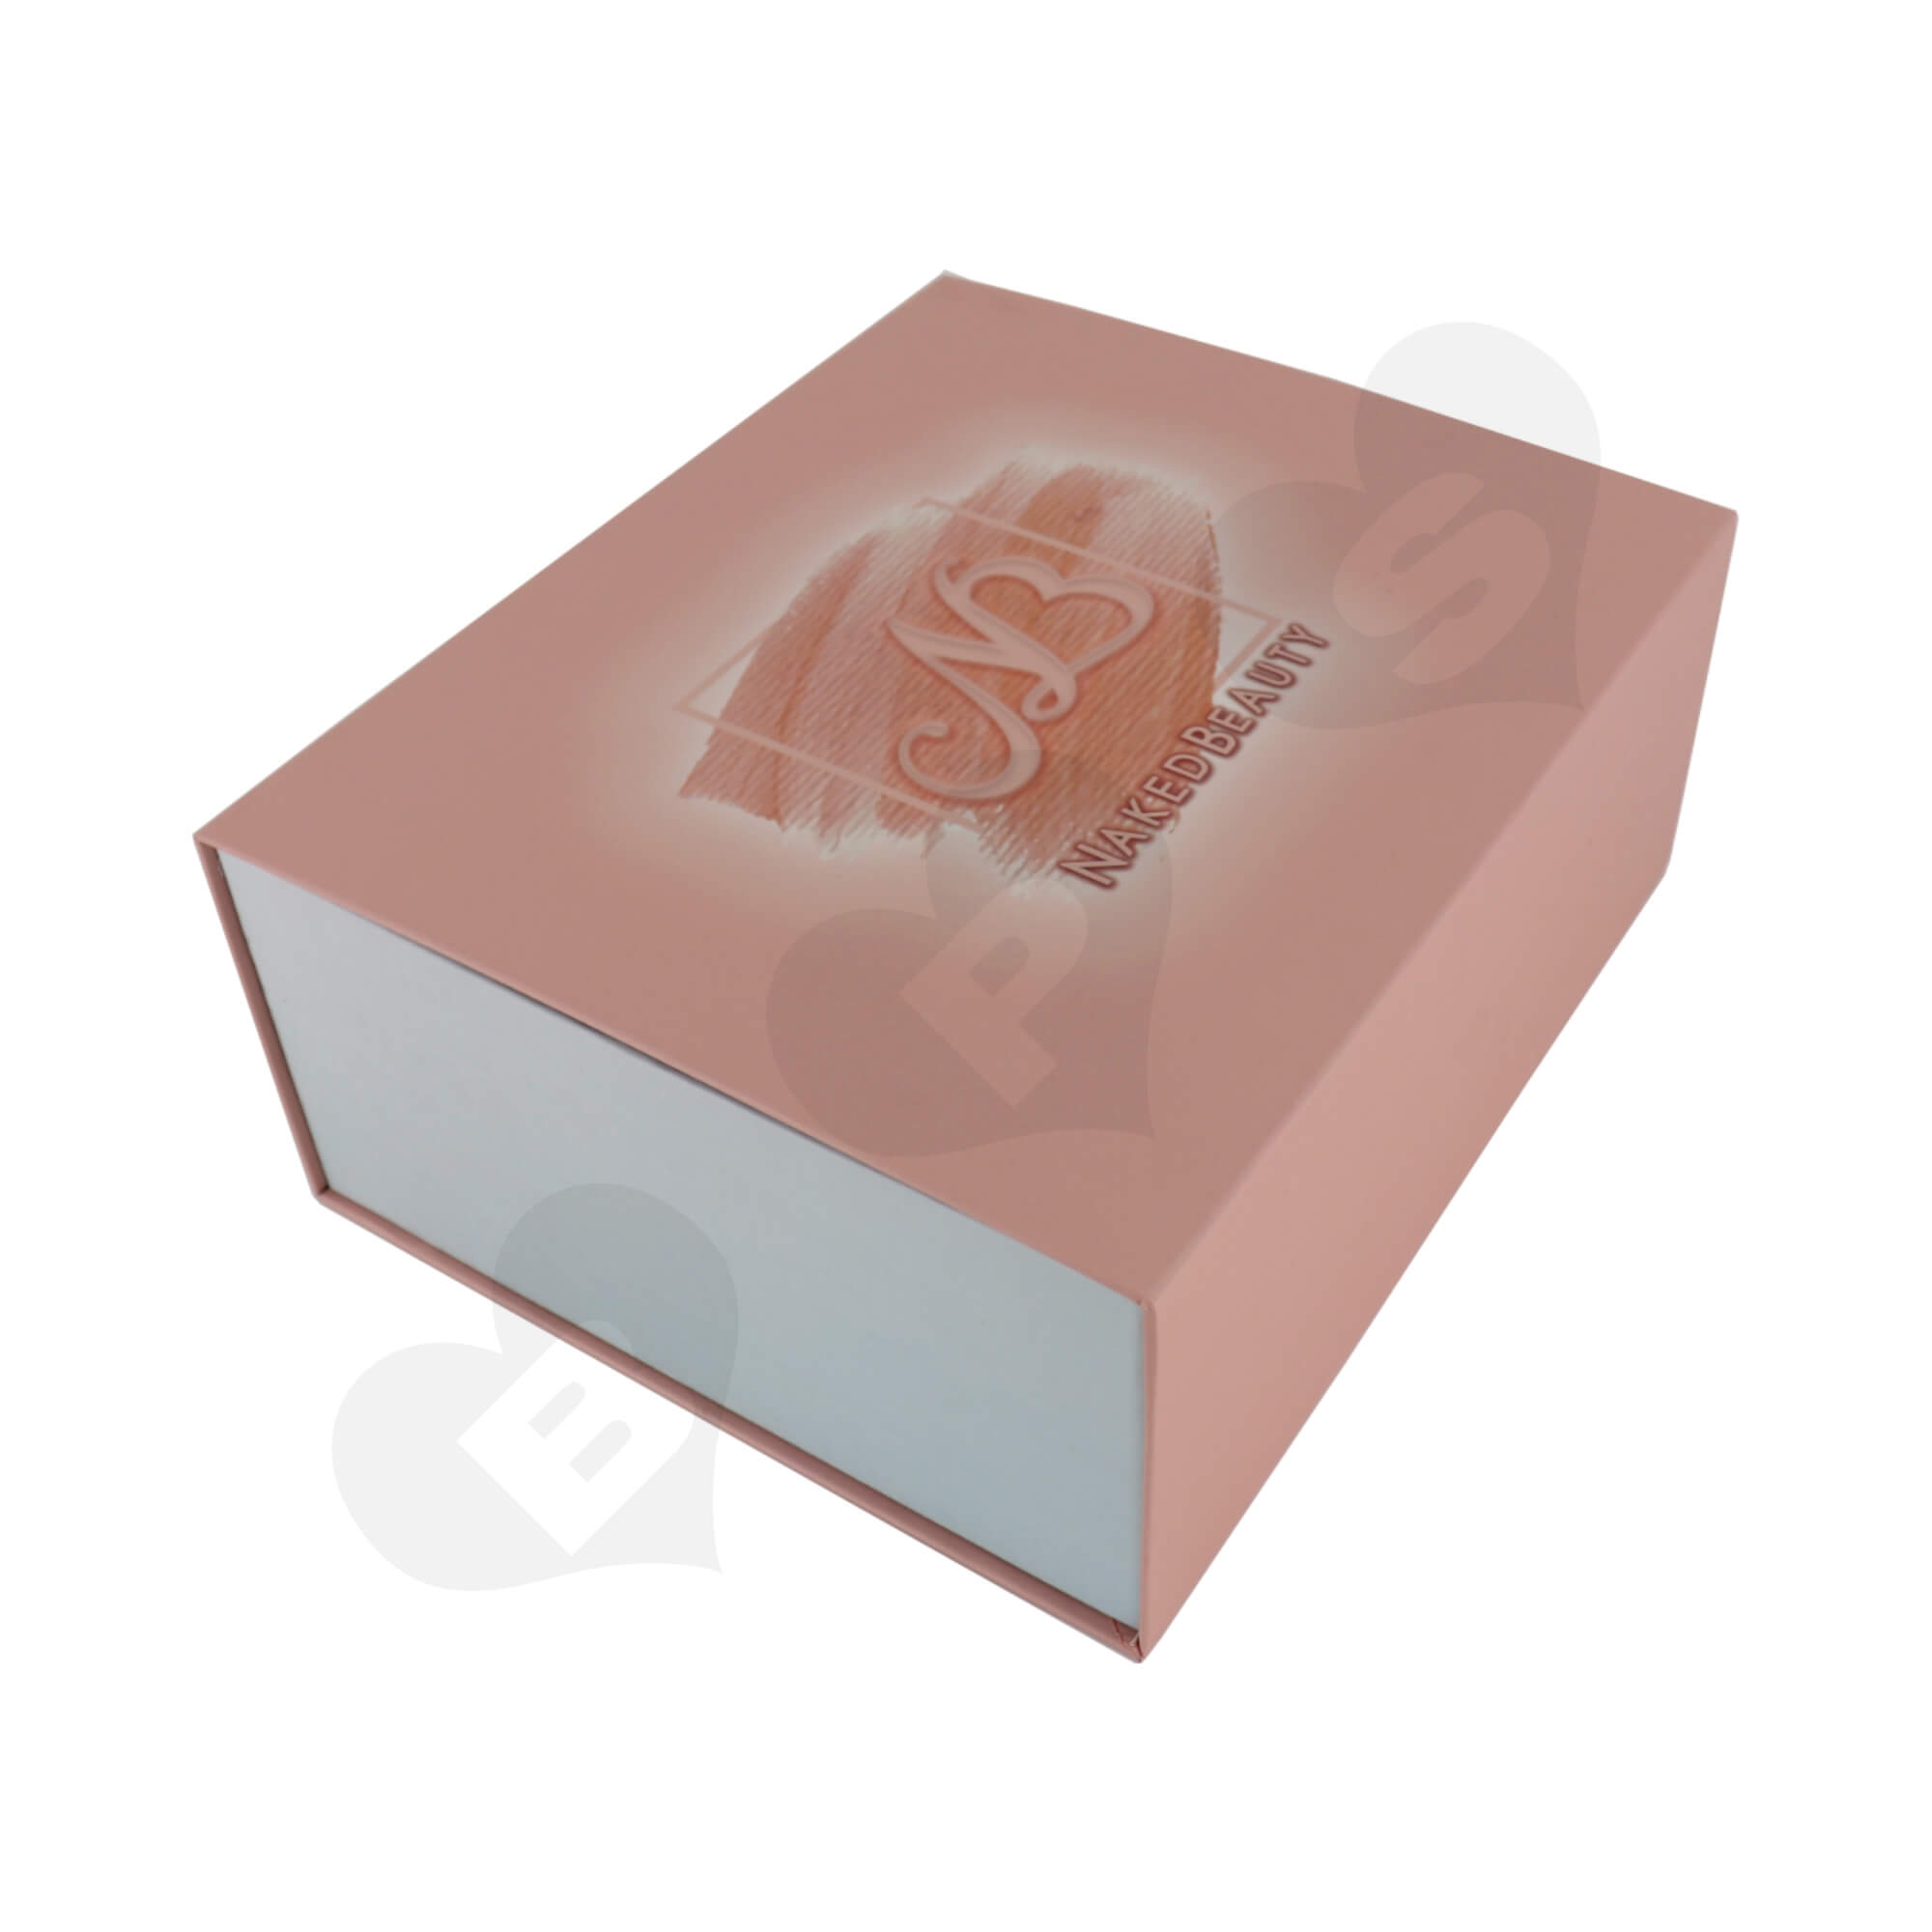 Luxury Cardboard Gift Box For Packing Cosmetic Makeup Kit Side View One